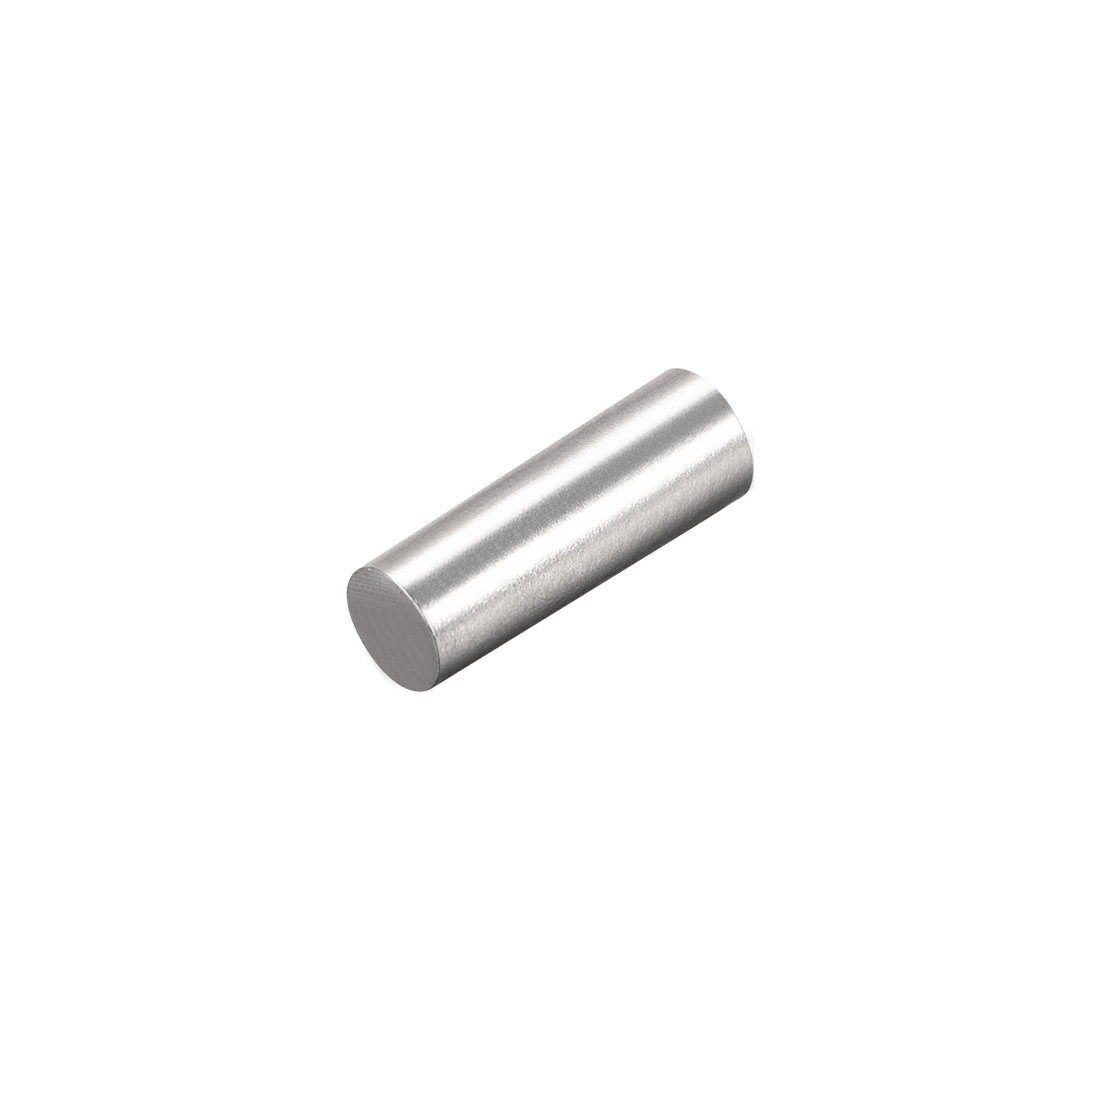 4mm x 12mm 1:50 Taper Pin 304 Stainless Steel Shelf Support Pin Fasten Elements